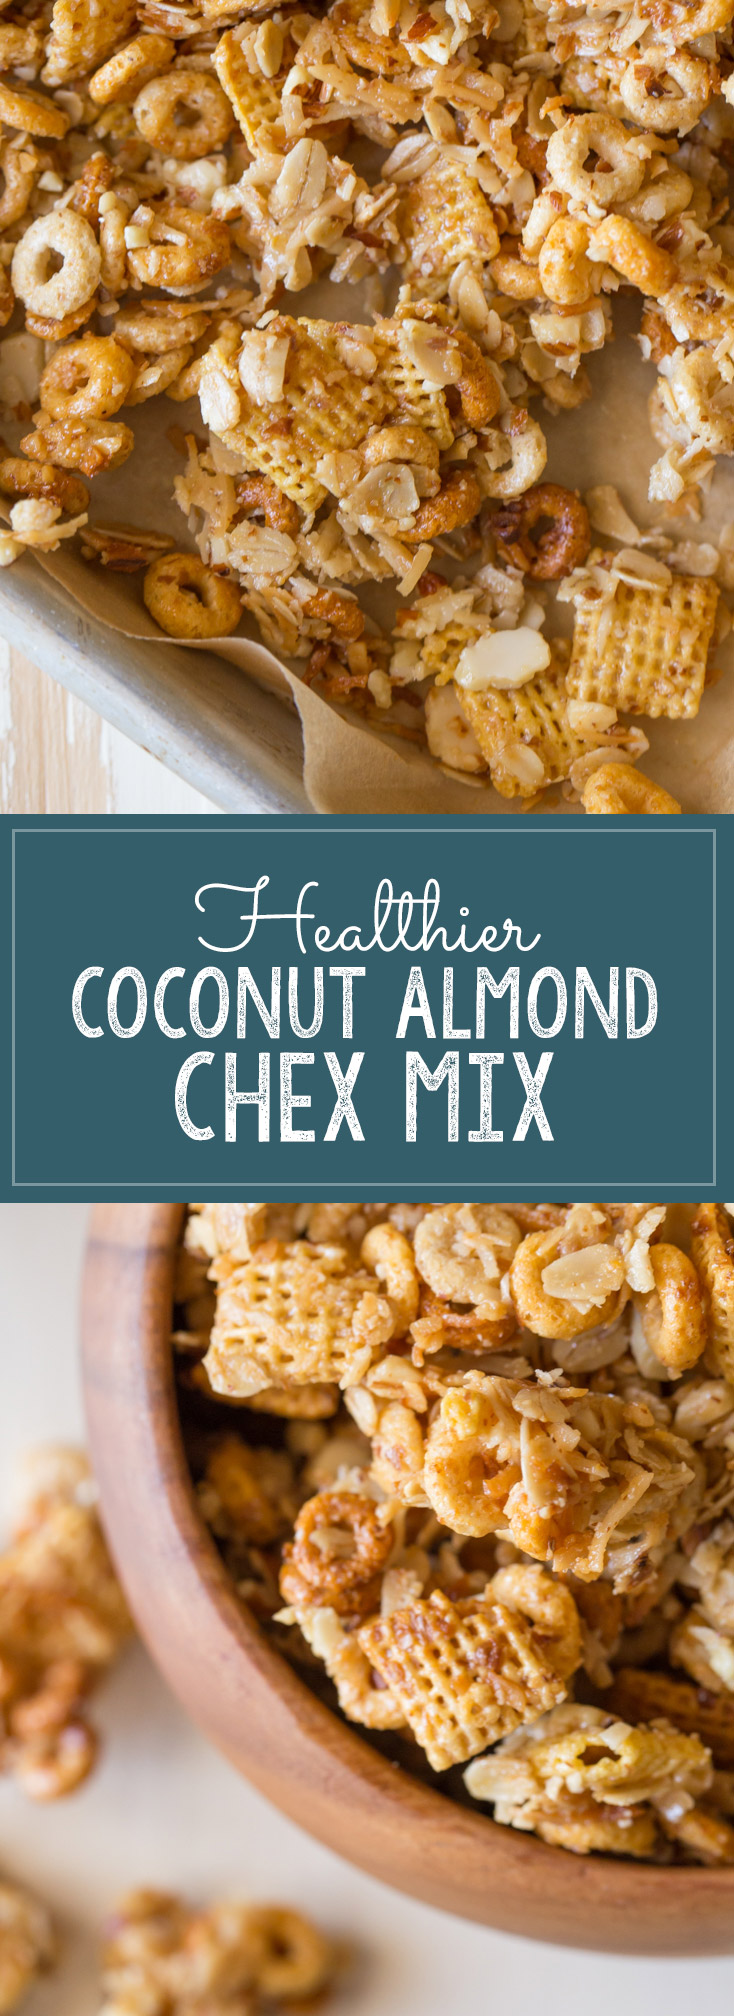 Healthier Coconut Almond Chex Mix - The perfect sweet and salty combo made healthier with coconut oil, honey, oats and almonds!